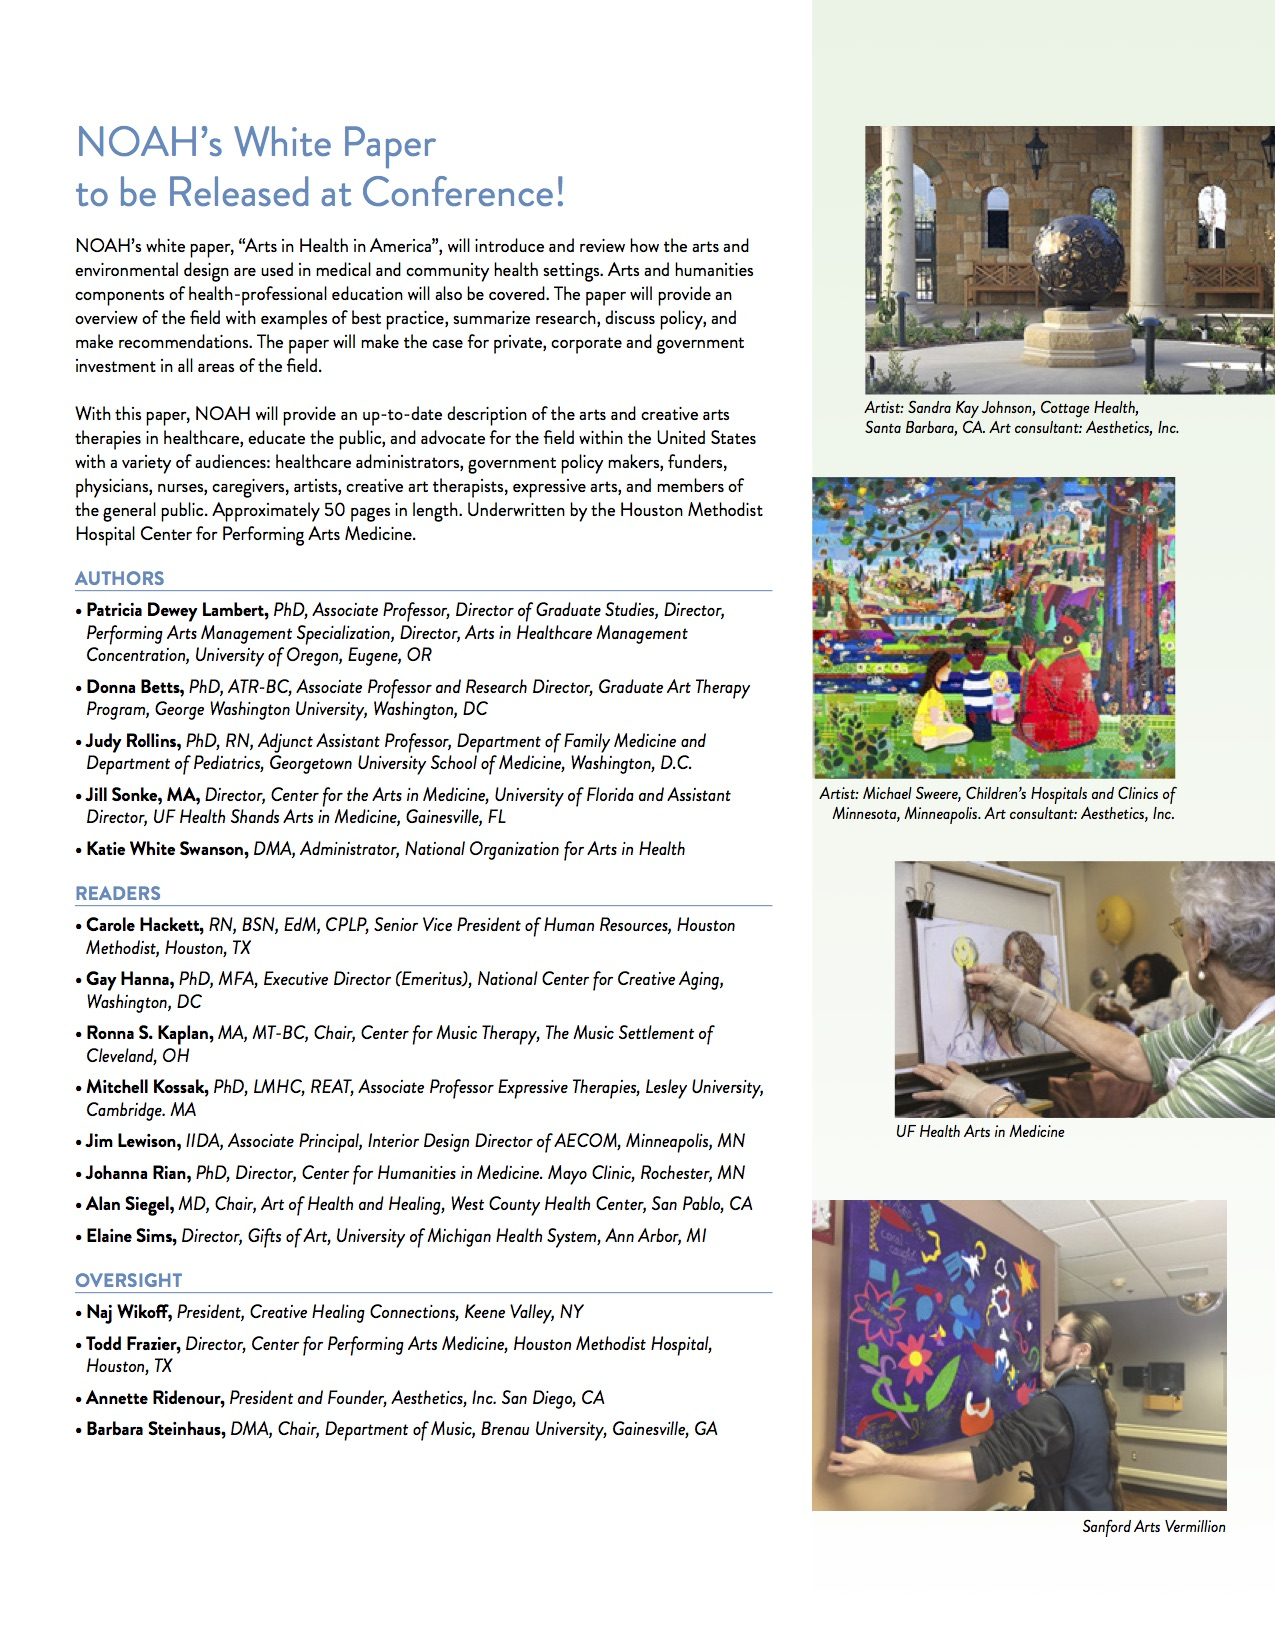 noah conference brochure presentation lineup special events and